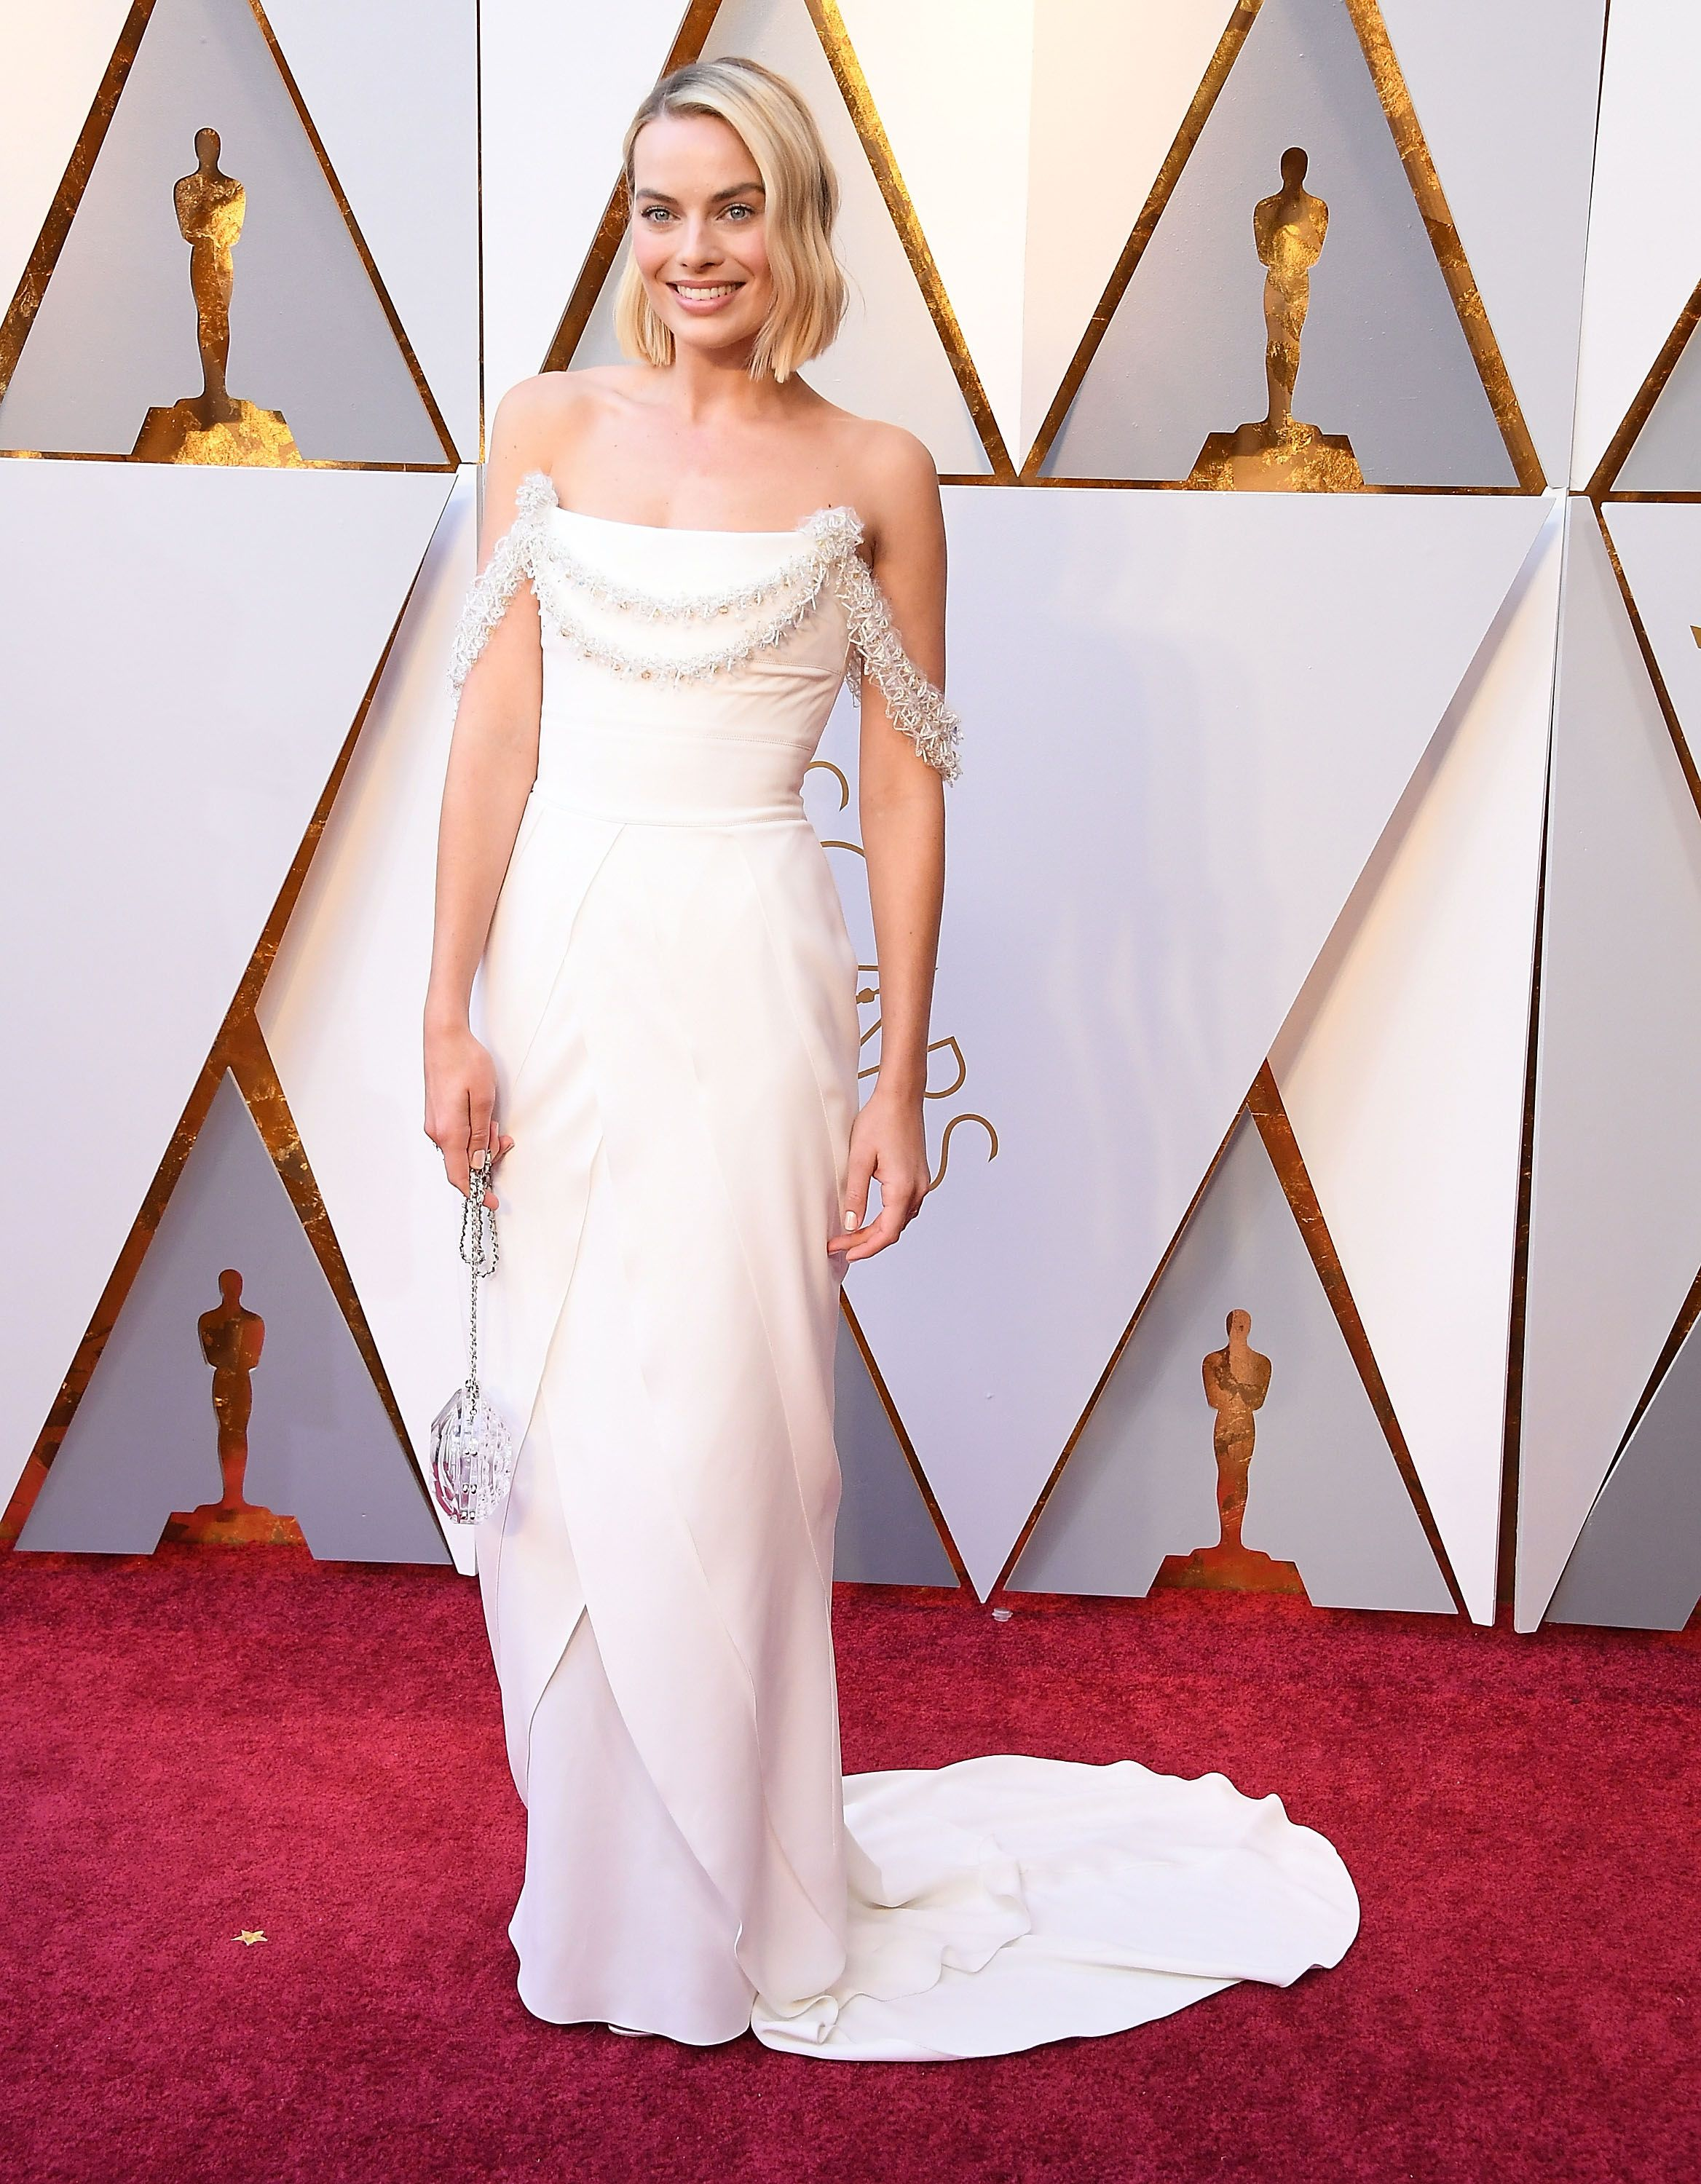 Margot Robbie, 2018 Margot Robbie looked like an angel in this white Chanel gown, which she wore when she was nominated for her role in I, Tonya .